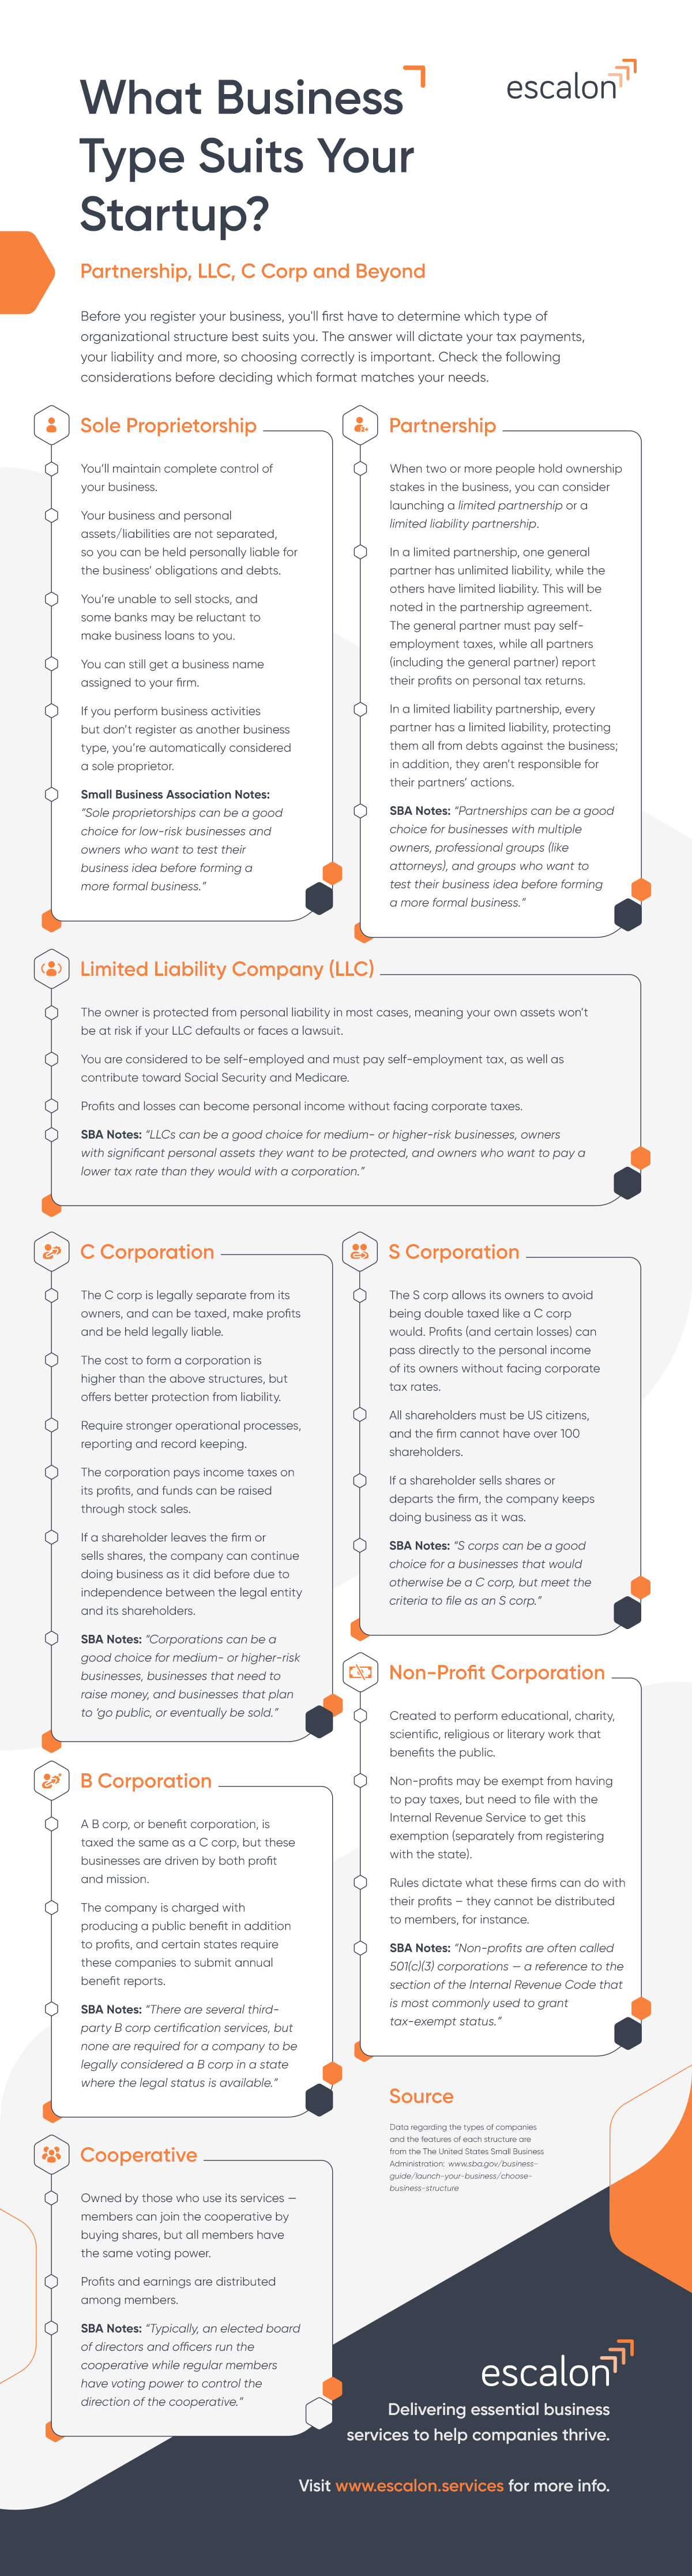 Business Type Infographic